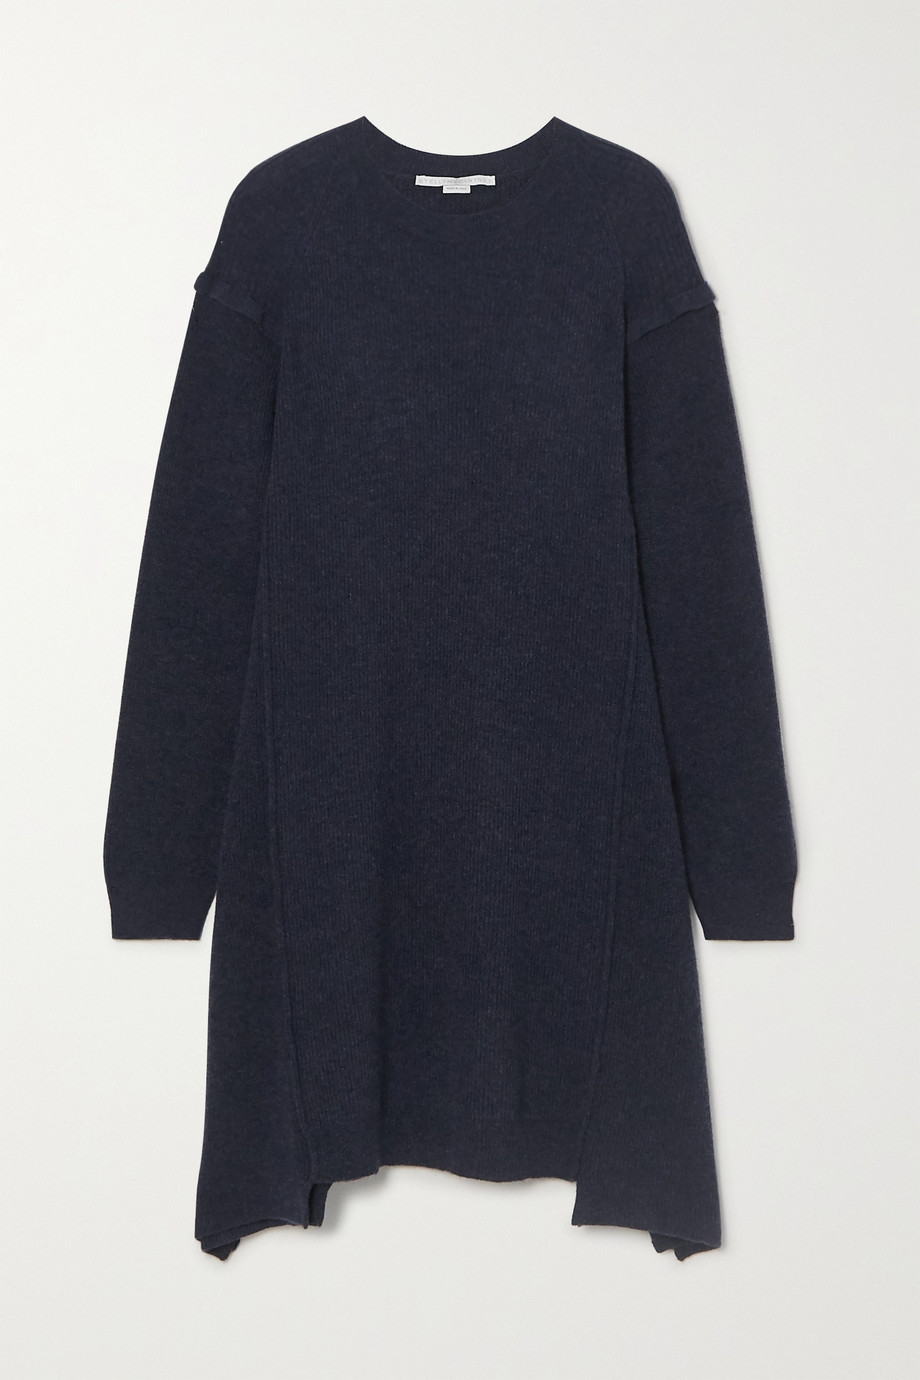 Stella McCartney Asymmetric ribbed wool and alpaca-blend mini dress